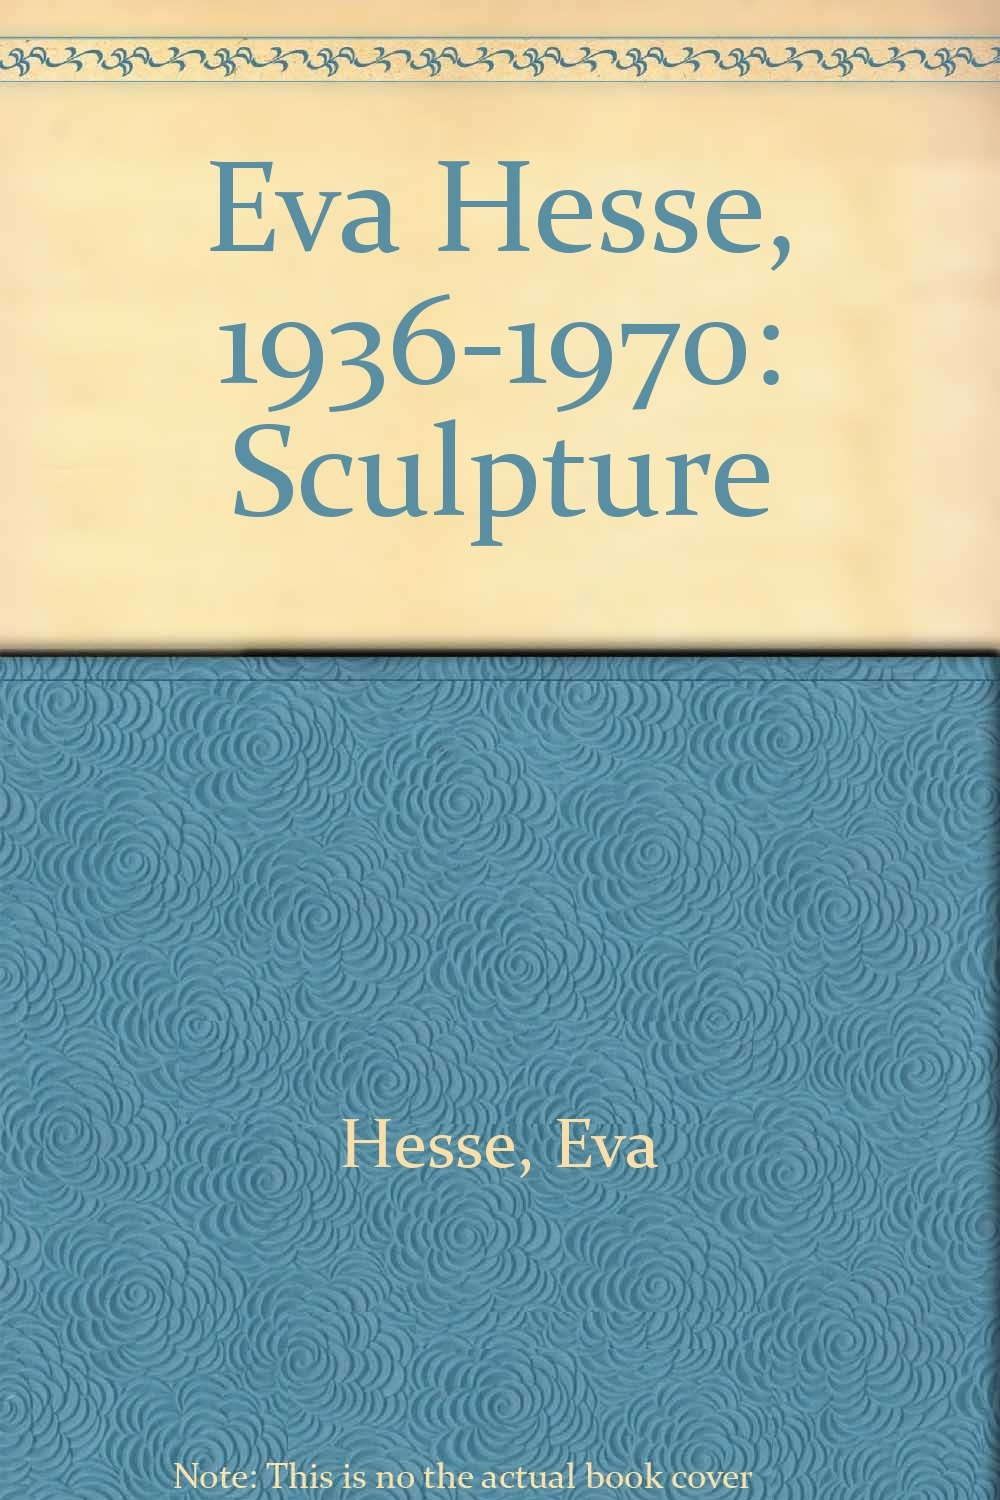 eva hesse transformations the sojourn in germany 1964 65 datebooks 1964 65 v 1ii